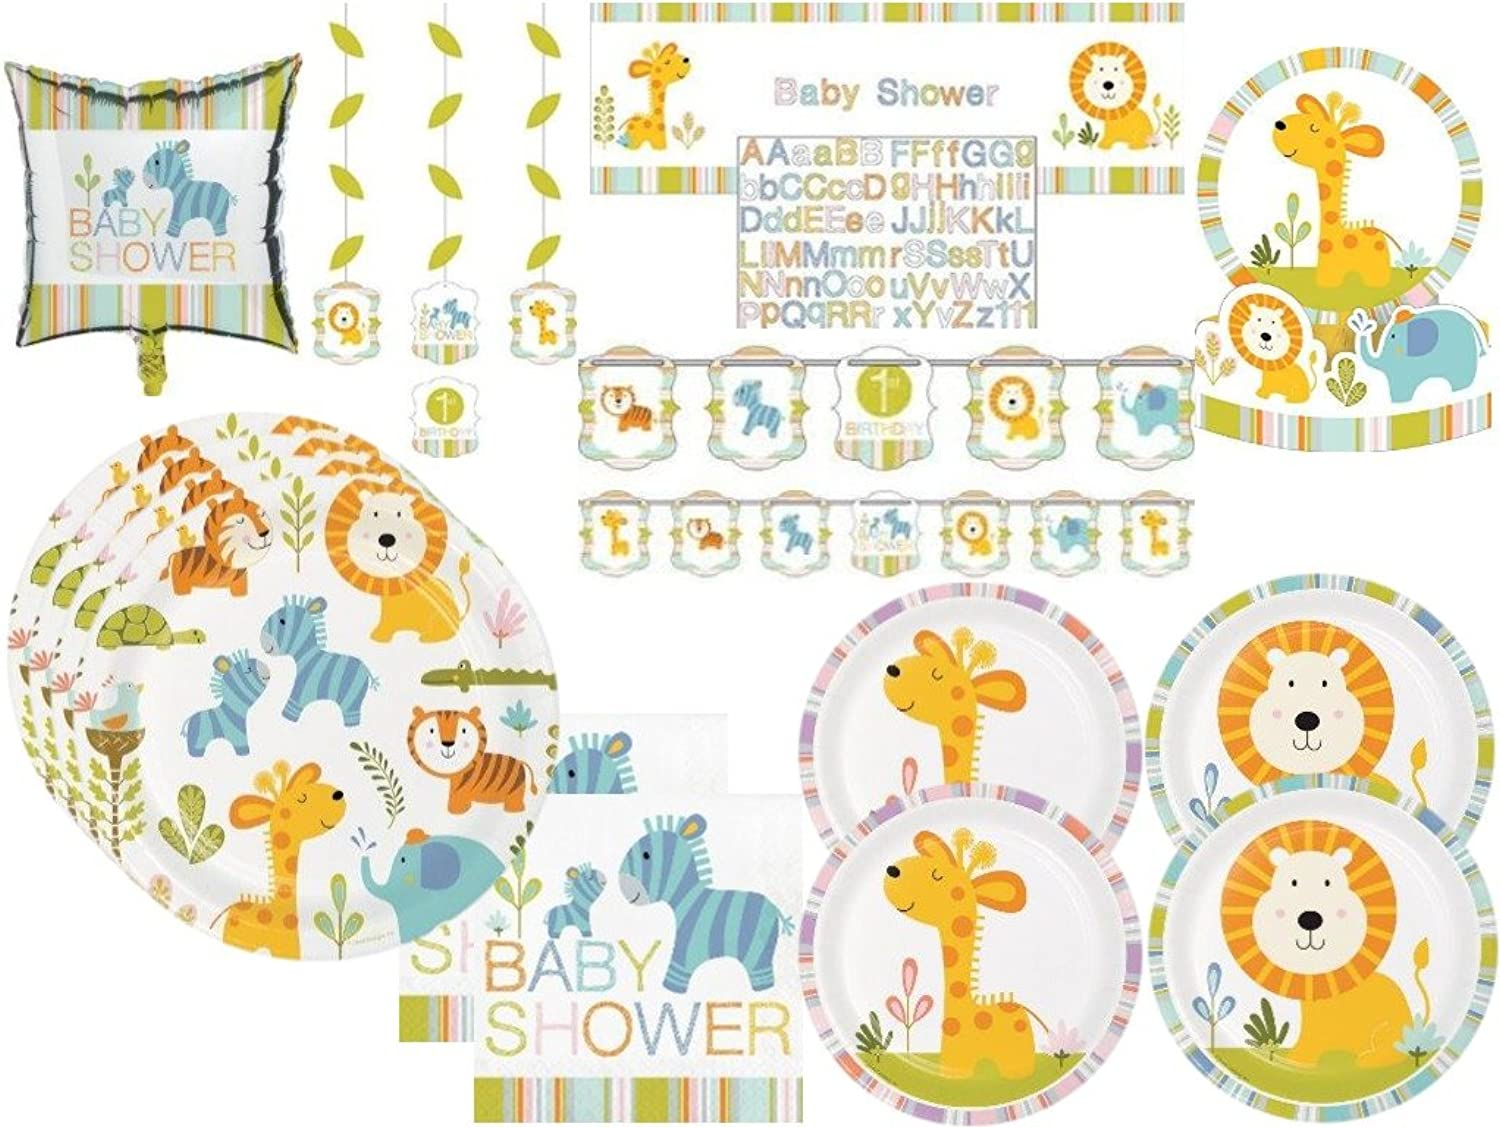 Baby Shower Happi Jungle Safari Lion, Giraffe, Turtle, Elephants Deluxe Party Tableware & Decorations Kit for 32 Guests